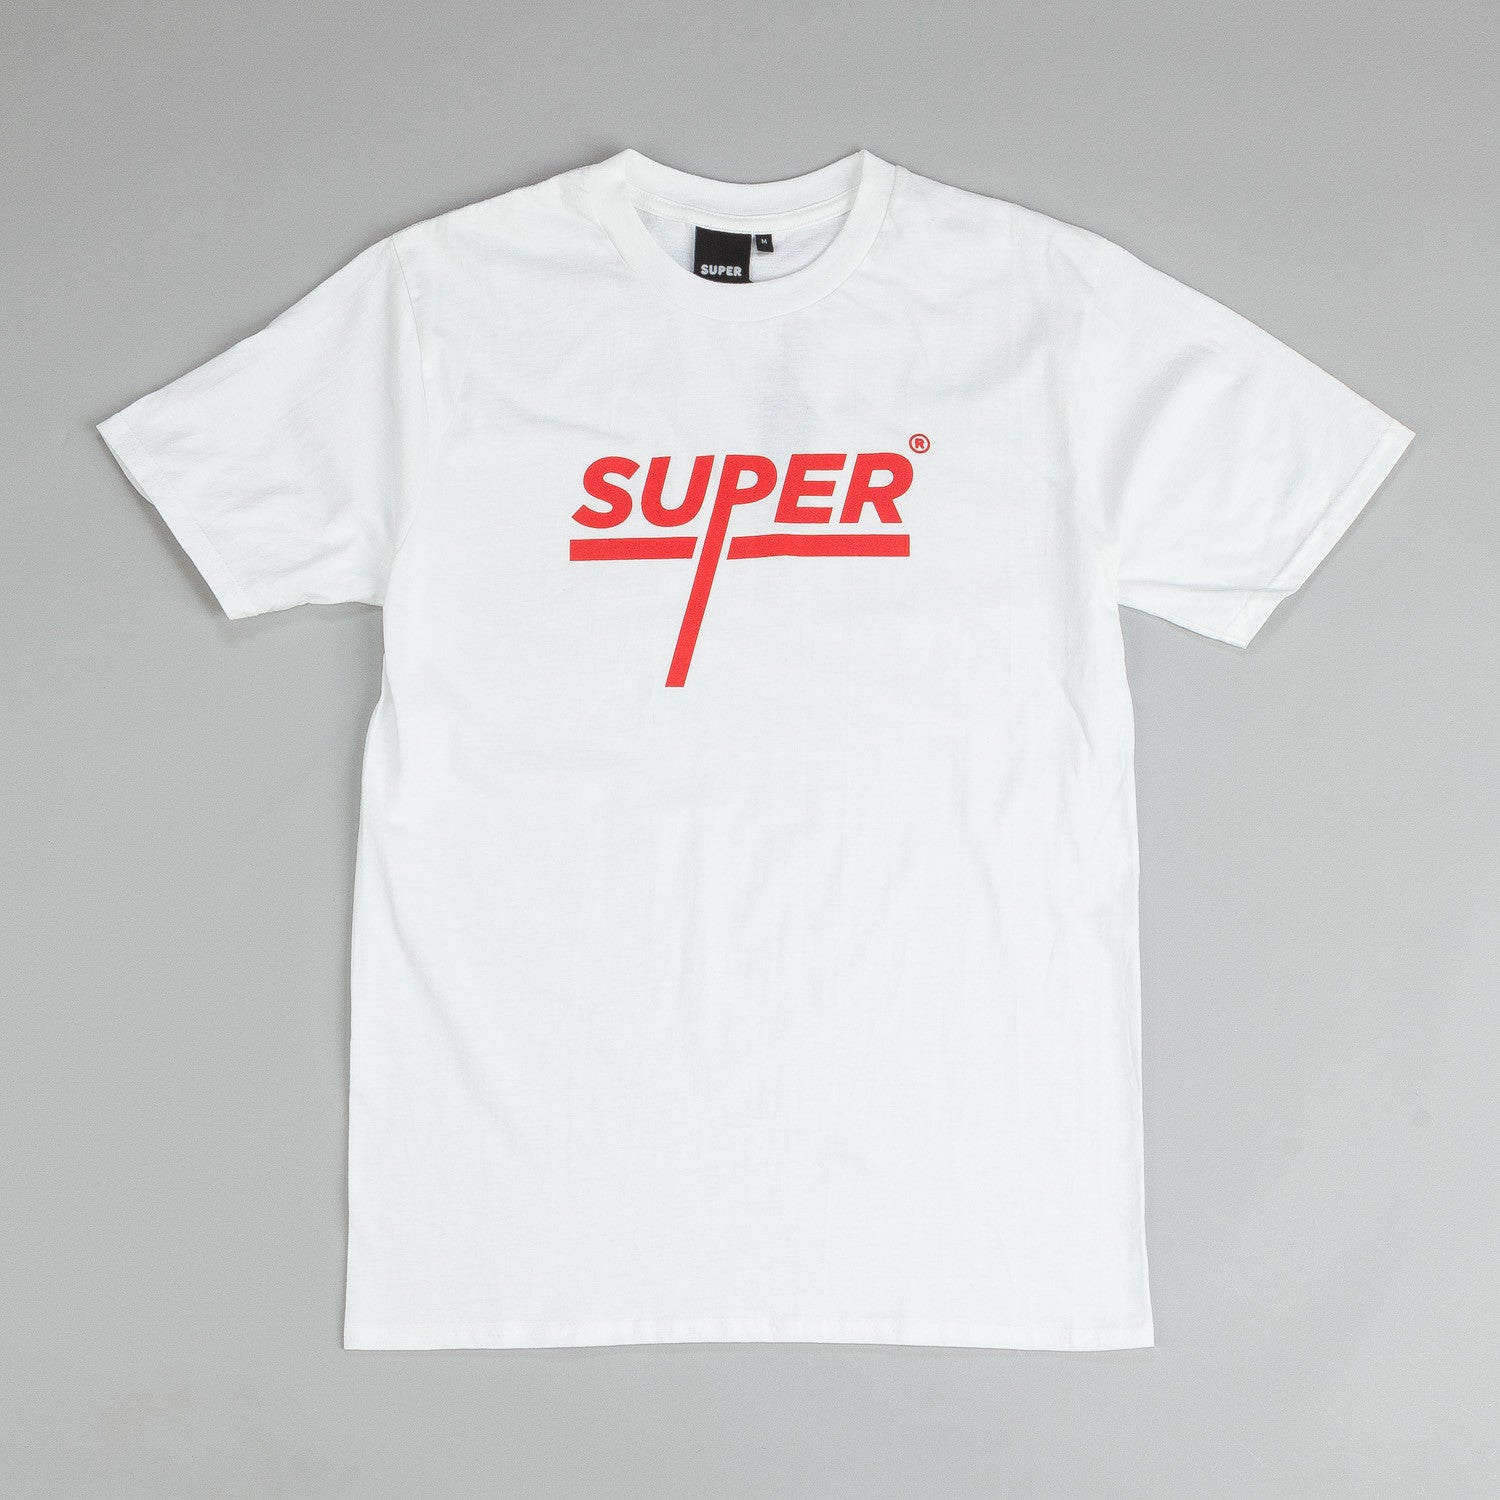 Colorsuper Super Underline T Shirt White / Red